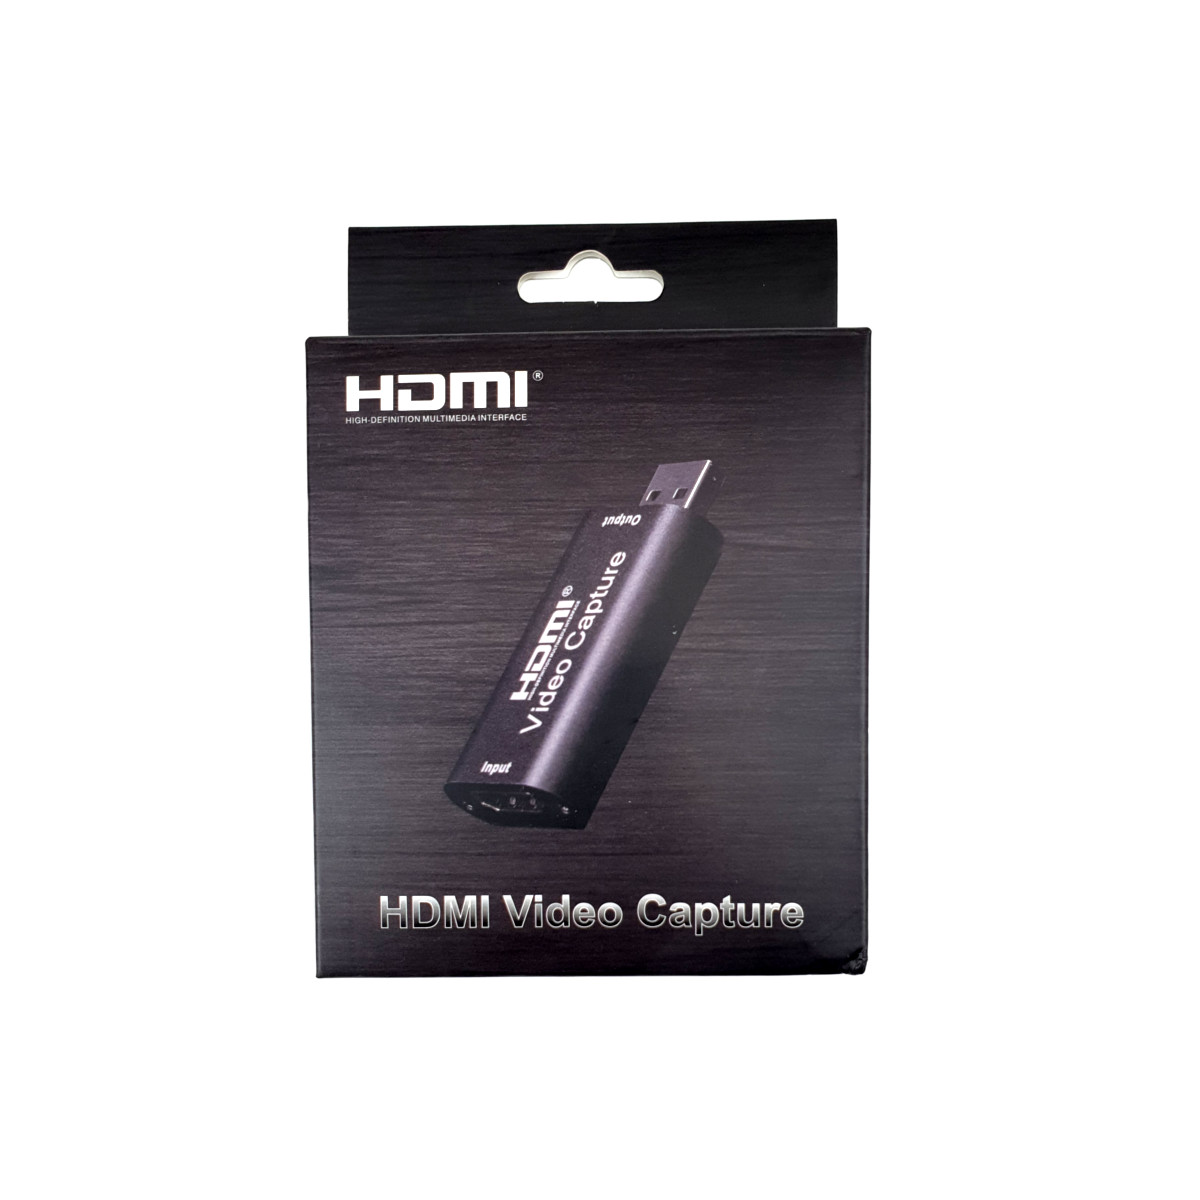 Grabber Nagrywarka HDMI Spacetronik SP-HVG04 do PC USB